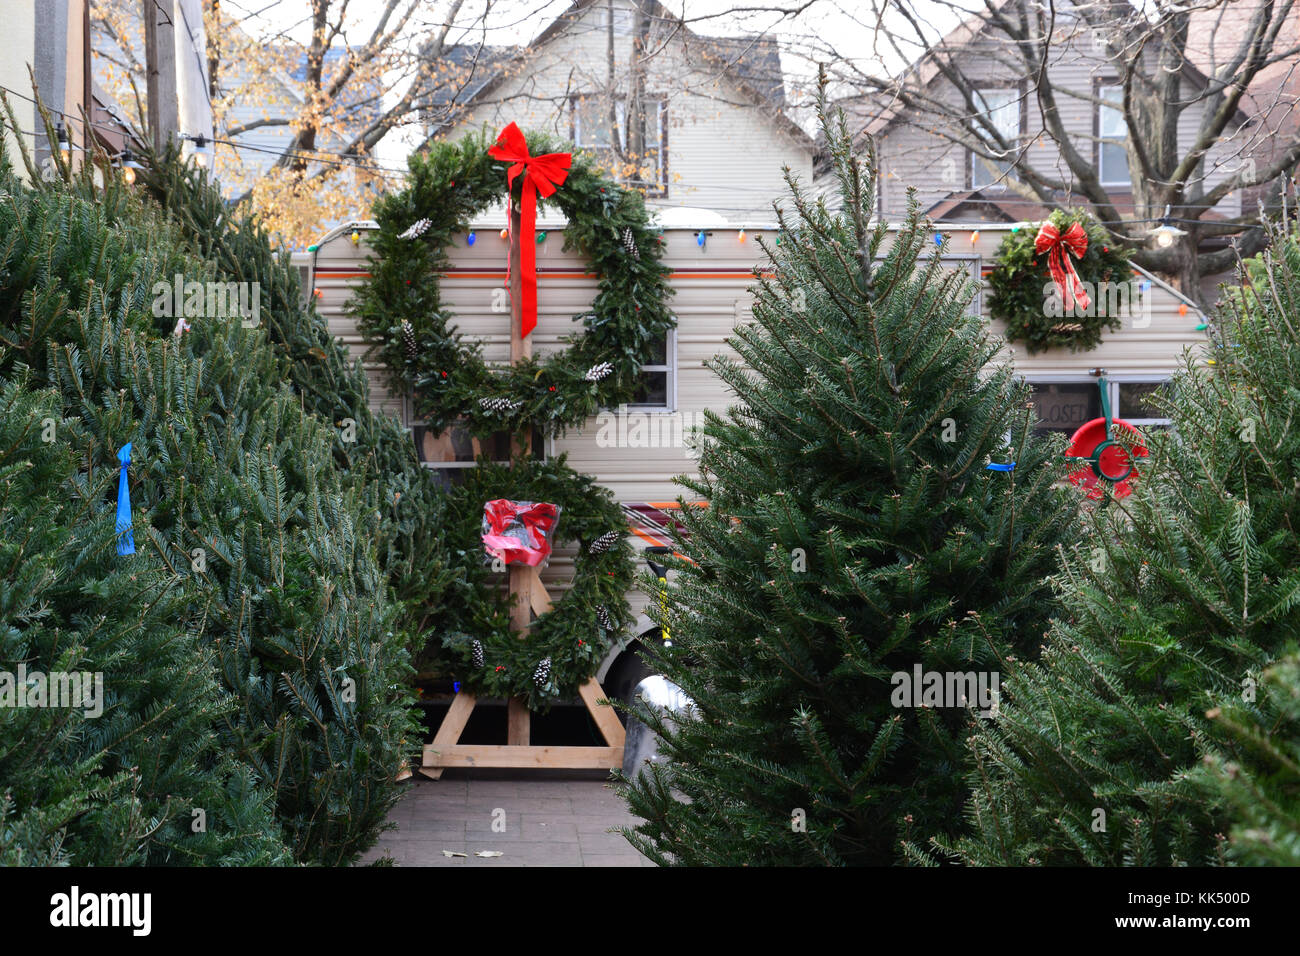 lincoln squares small neighborhood christmas tree lot has been serving the residents of the north side chicago neighborhood for many years